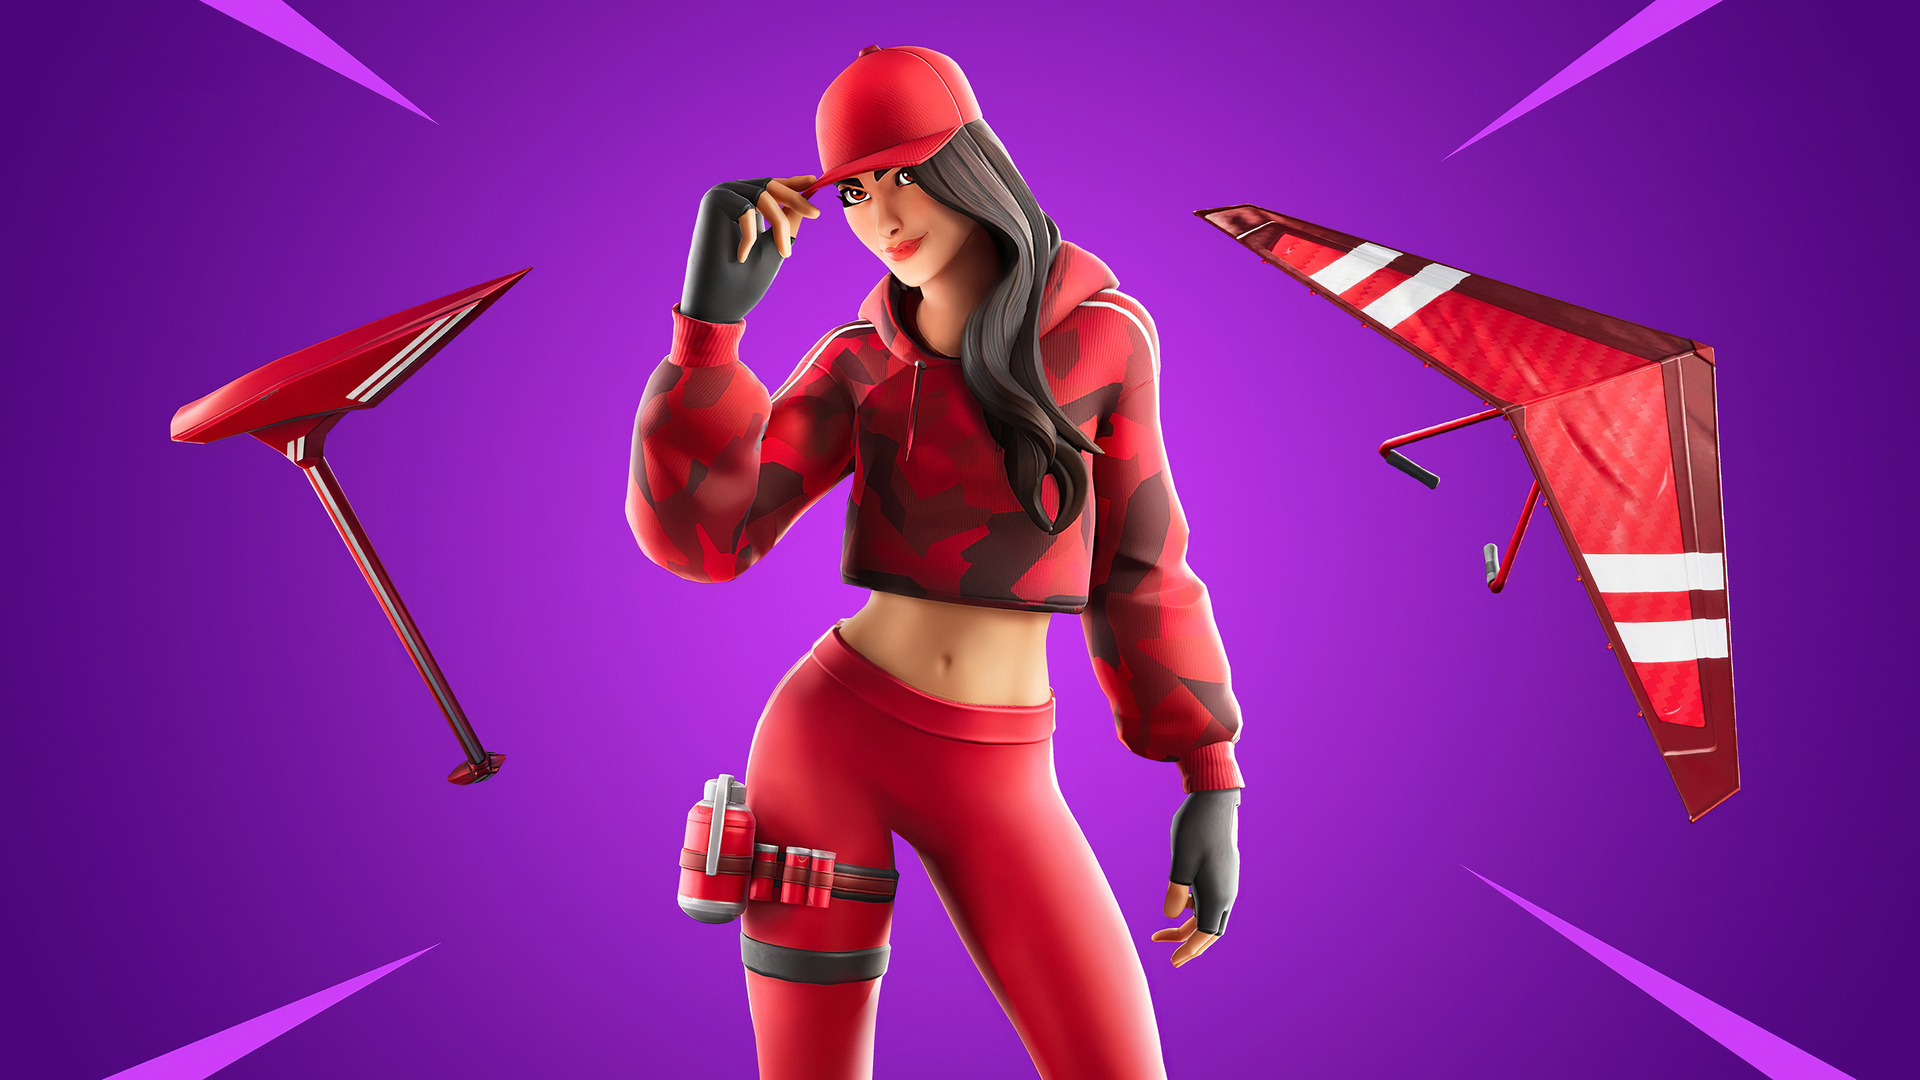 1920x1080 Fortnite Chapter 2 Ruby Outfit 4k Laptop Full Hd